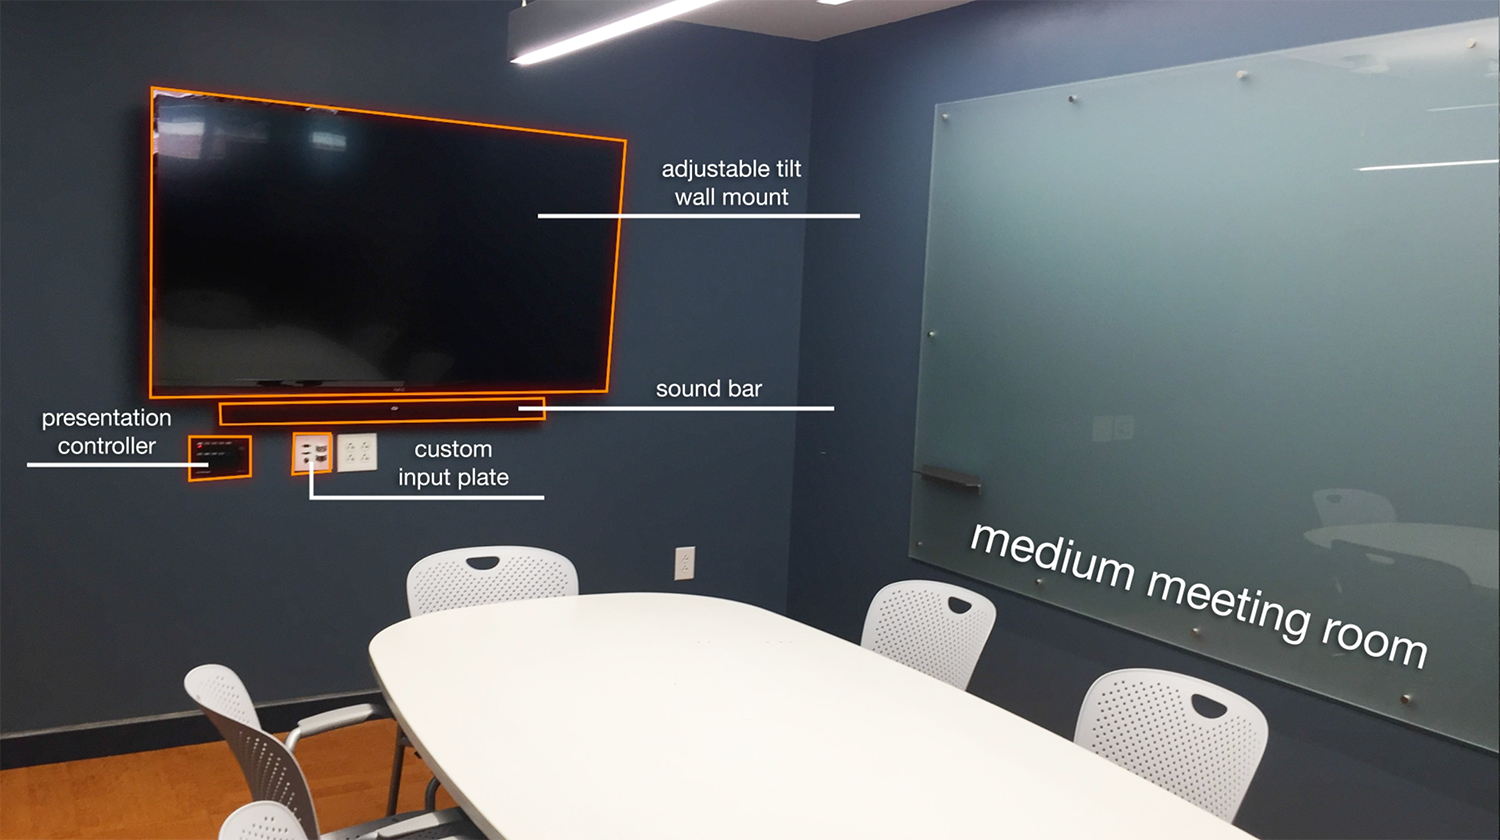 Medium Meeting Room (Total Advising Center AV System Design & Installation)